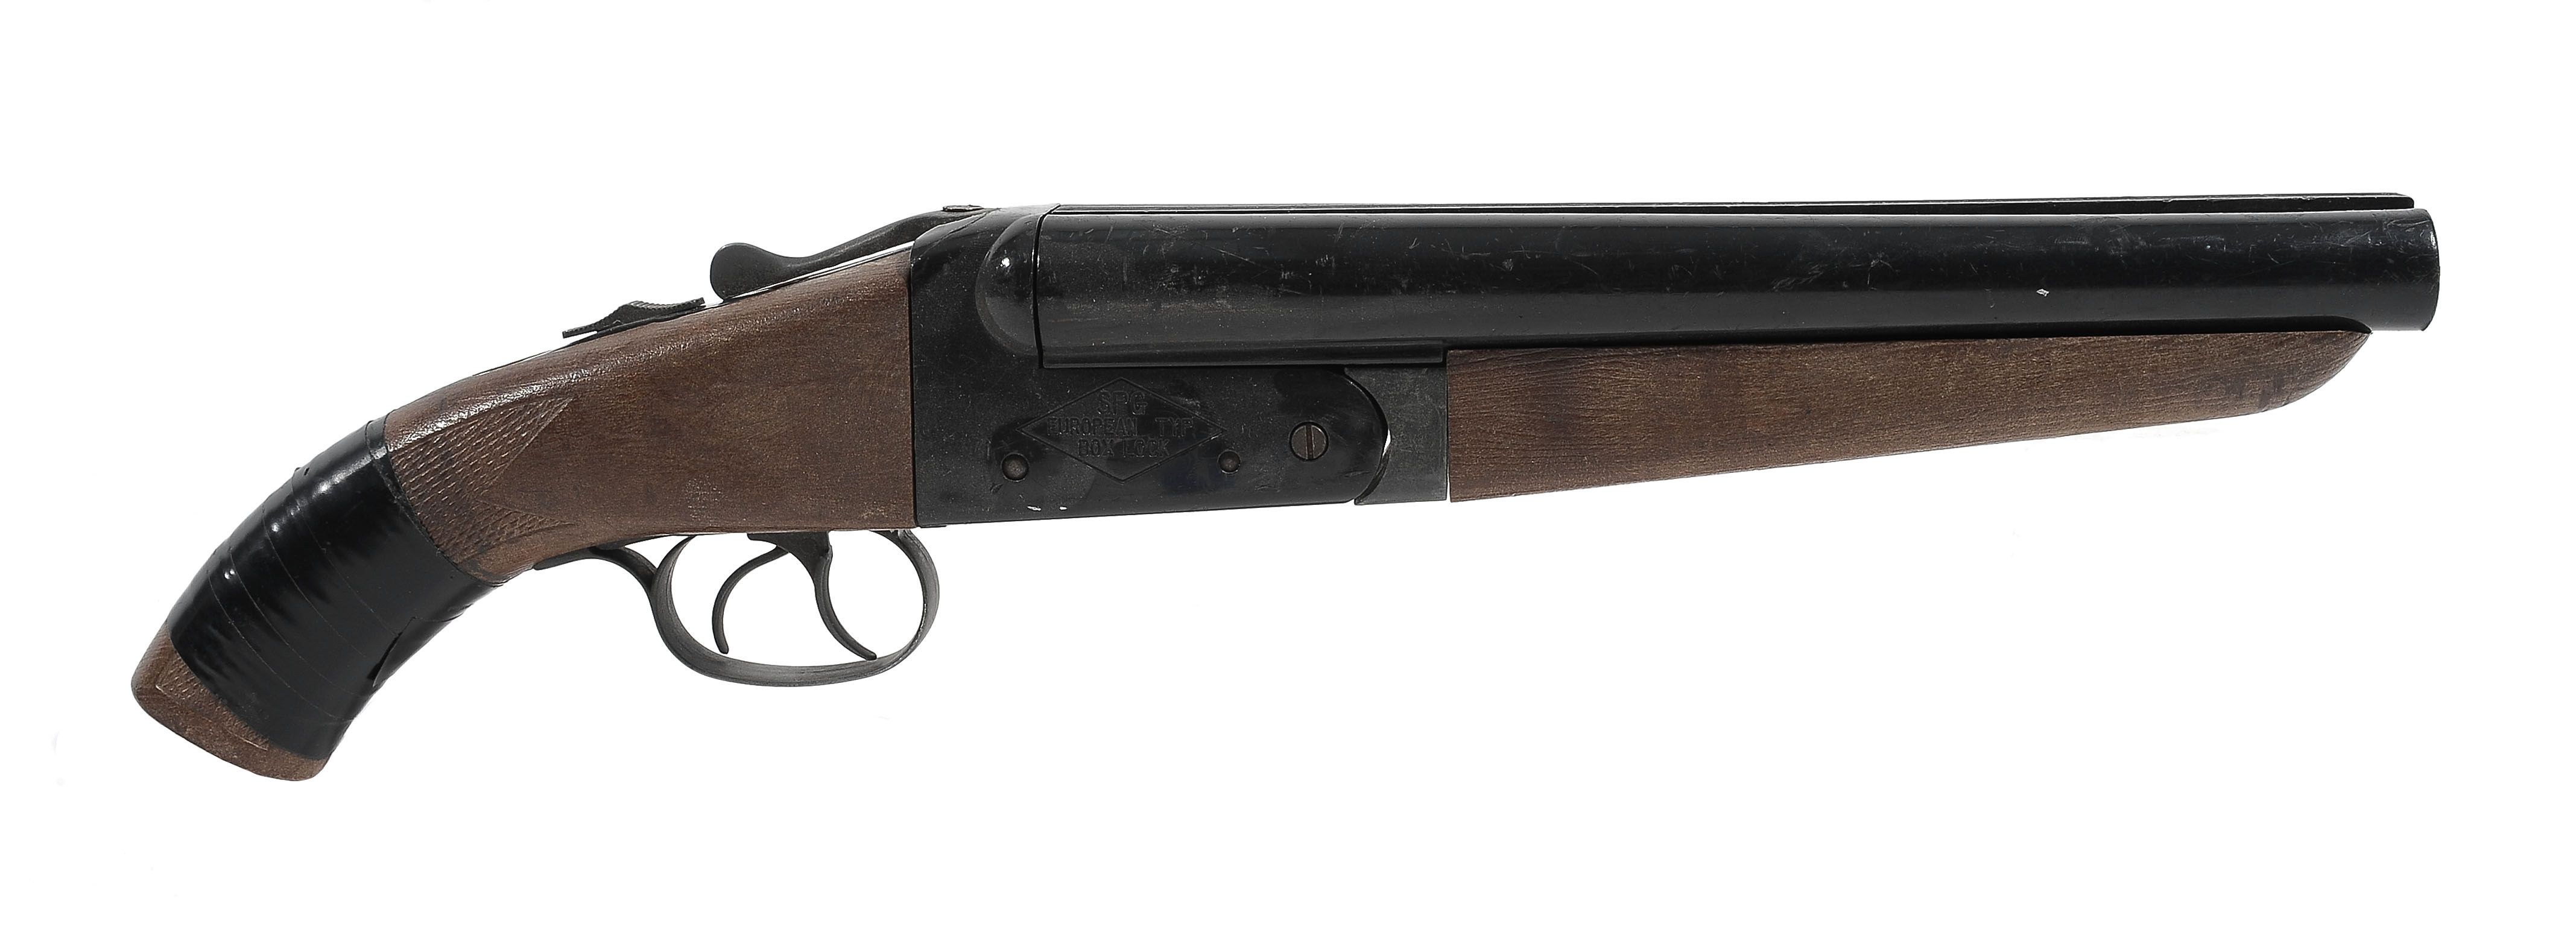 Replica Sawed-Off Shotgun